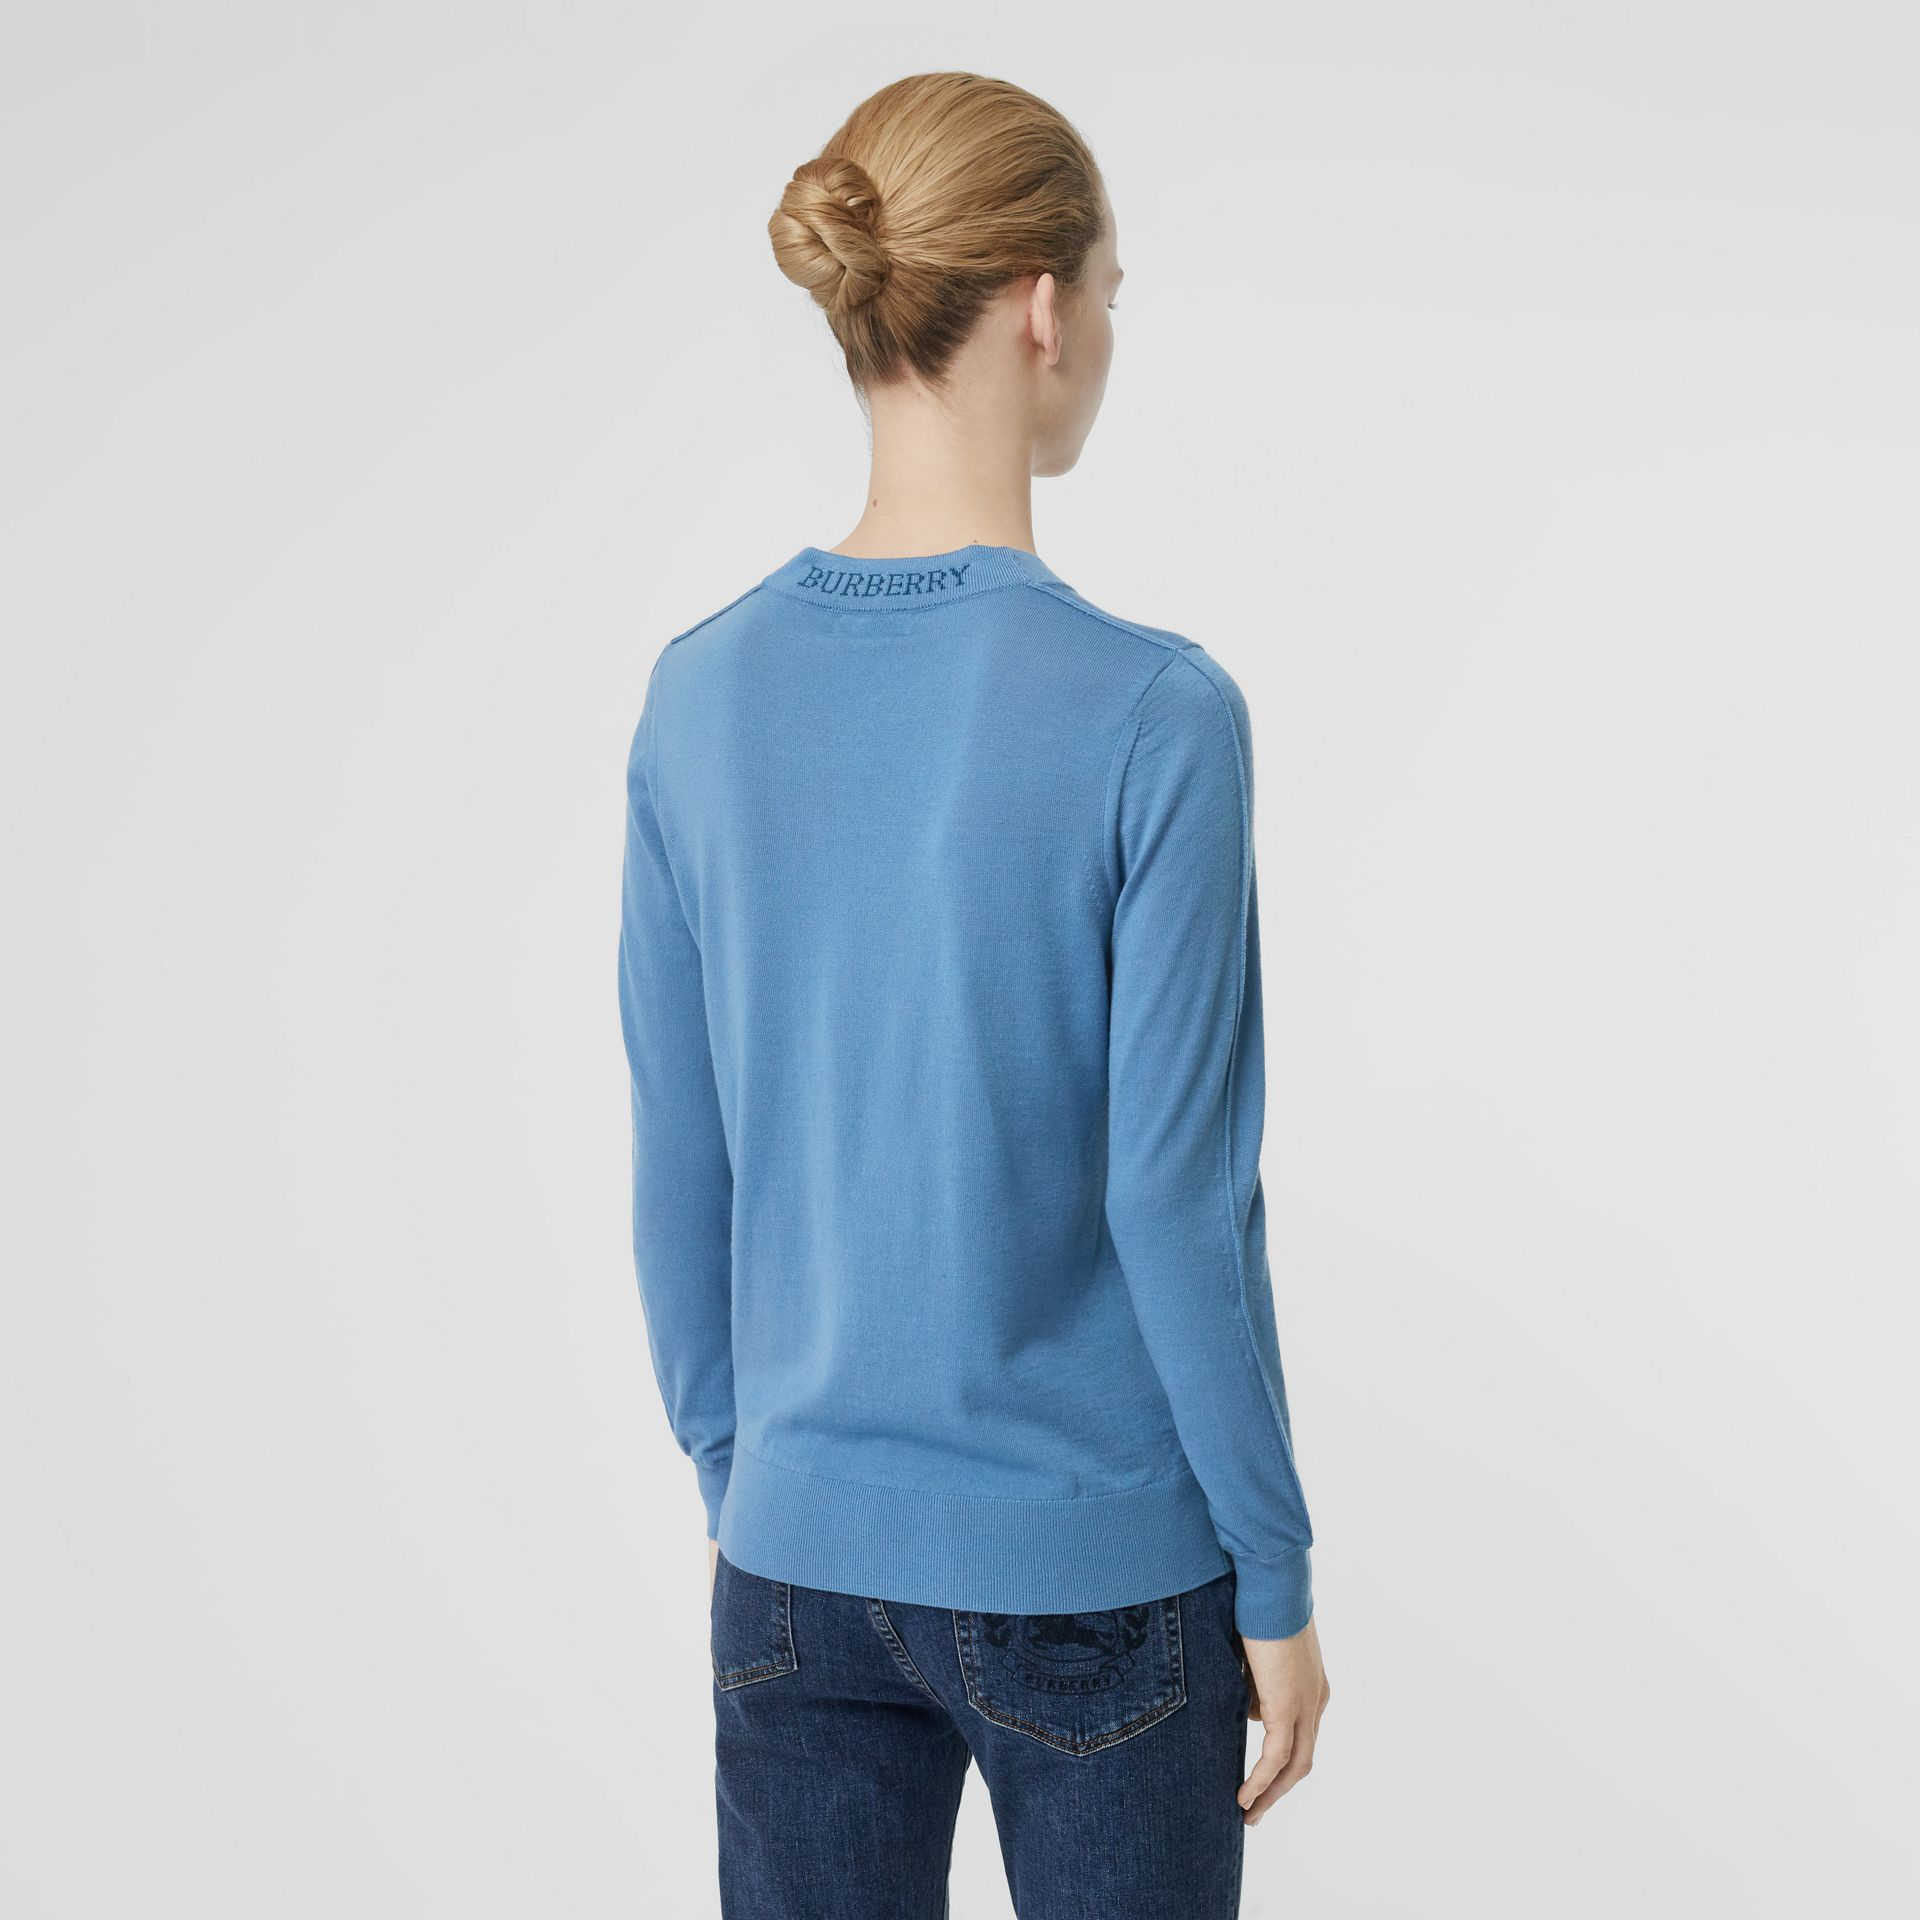 Logo Detail Merino Wool Sweater in Pebble Blue - Women | Burberry - gallery image 2